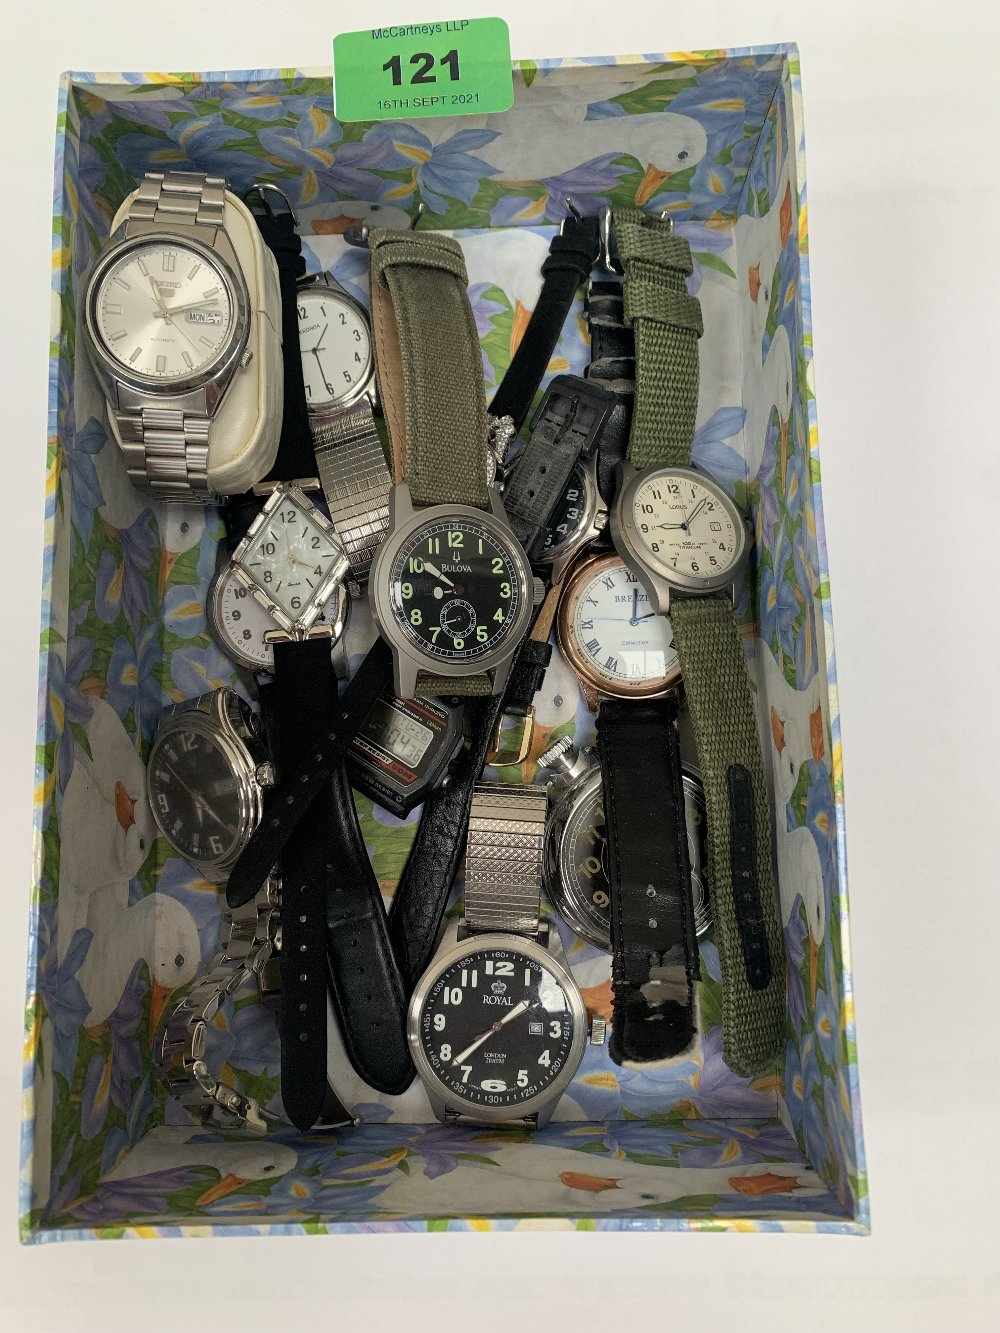 A collection of wristwatches